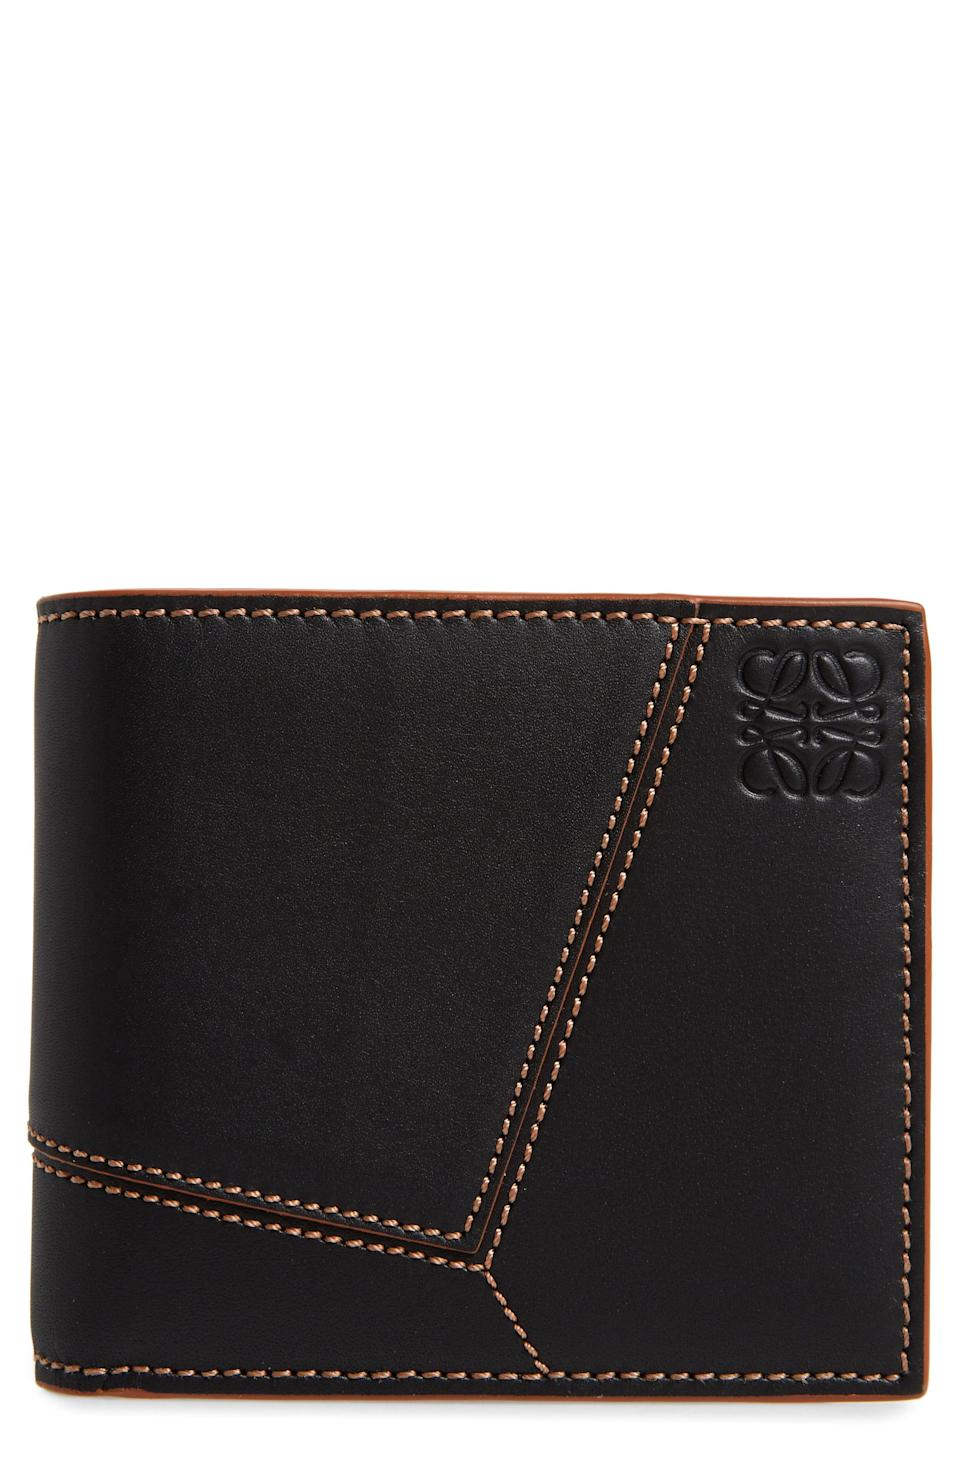 """<p><strong>Loewe</strong></p><p>nordstrom.com</p><p><strong>$550.00</strong></p><p><a href=""""https://go.redirectingat.com?id=74968X1596630&url=https%3A%2F%2Fwww.nordstrom.com%2Fs%2Floewe-puzzle-stitch-leather-bifold-wallet%2F5685833&sref=https%3A%2F%2Fwww.esquire.com%2Fstyle%2Fmens-accessories%2Fg35924710%2Fmens-luxury-wallets%2F"""" rel=""""nofollow noopener"""" target=""""_blank"""" data-ylk=""""slk:Shop Now"""" class=""""link rapid-noclick-resp"""">Shop Now</a></p><p>A luxury wallet for the arts-and-crafts set.</p>"""